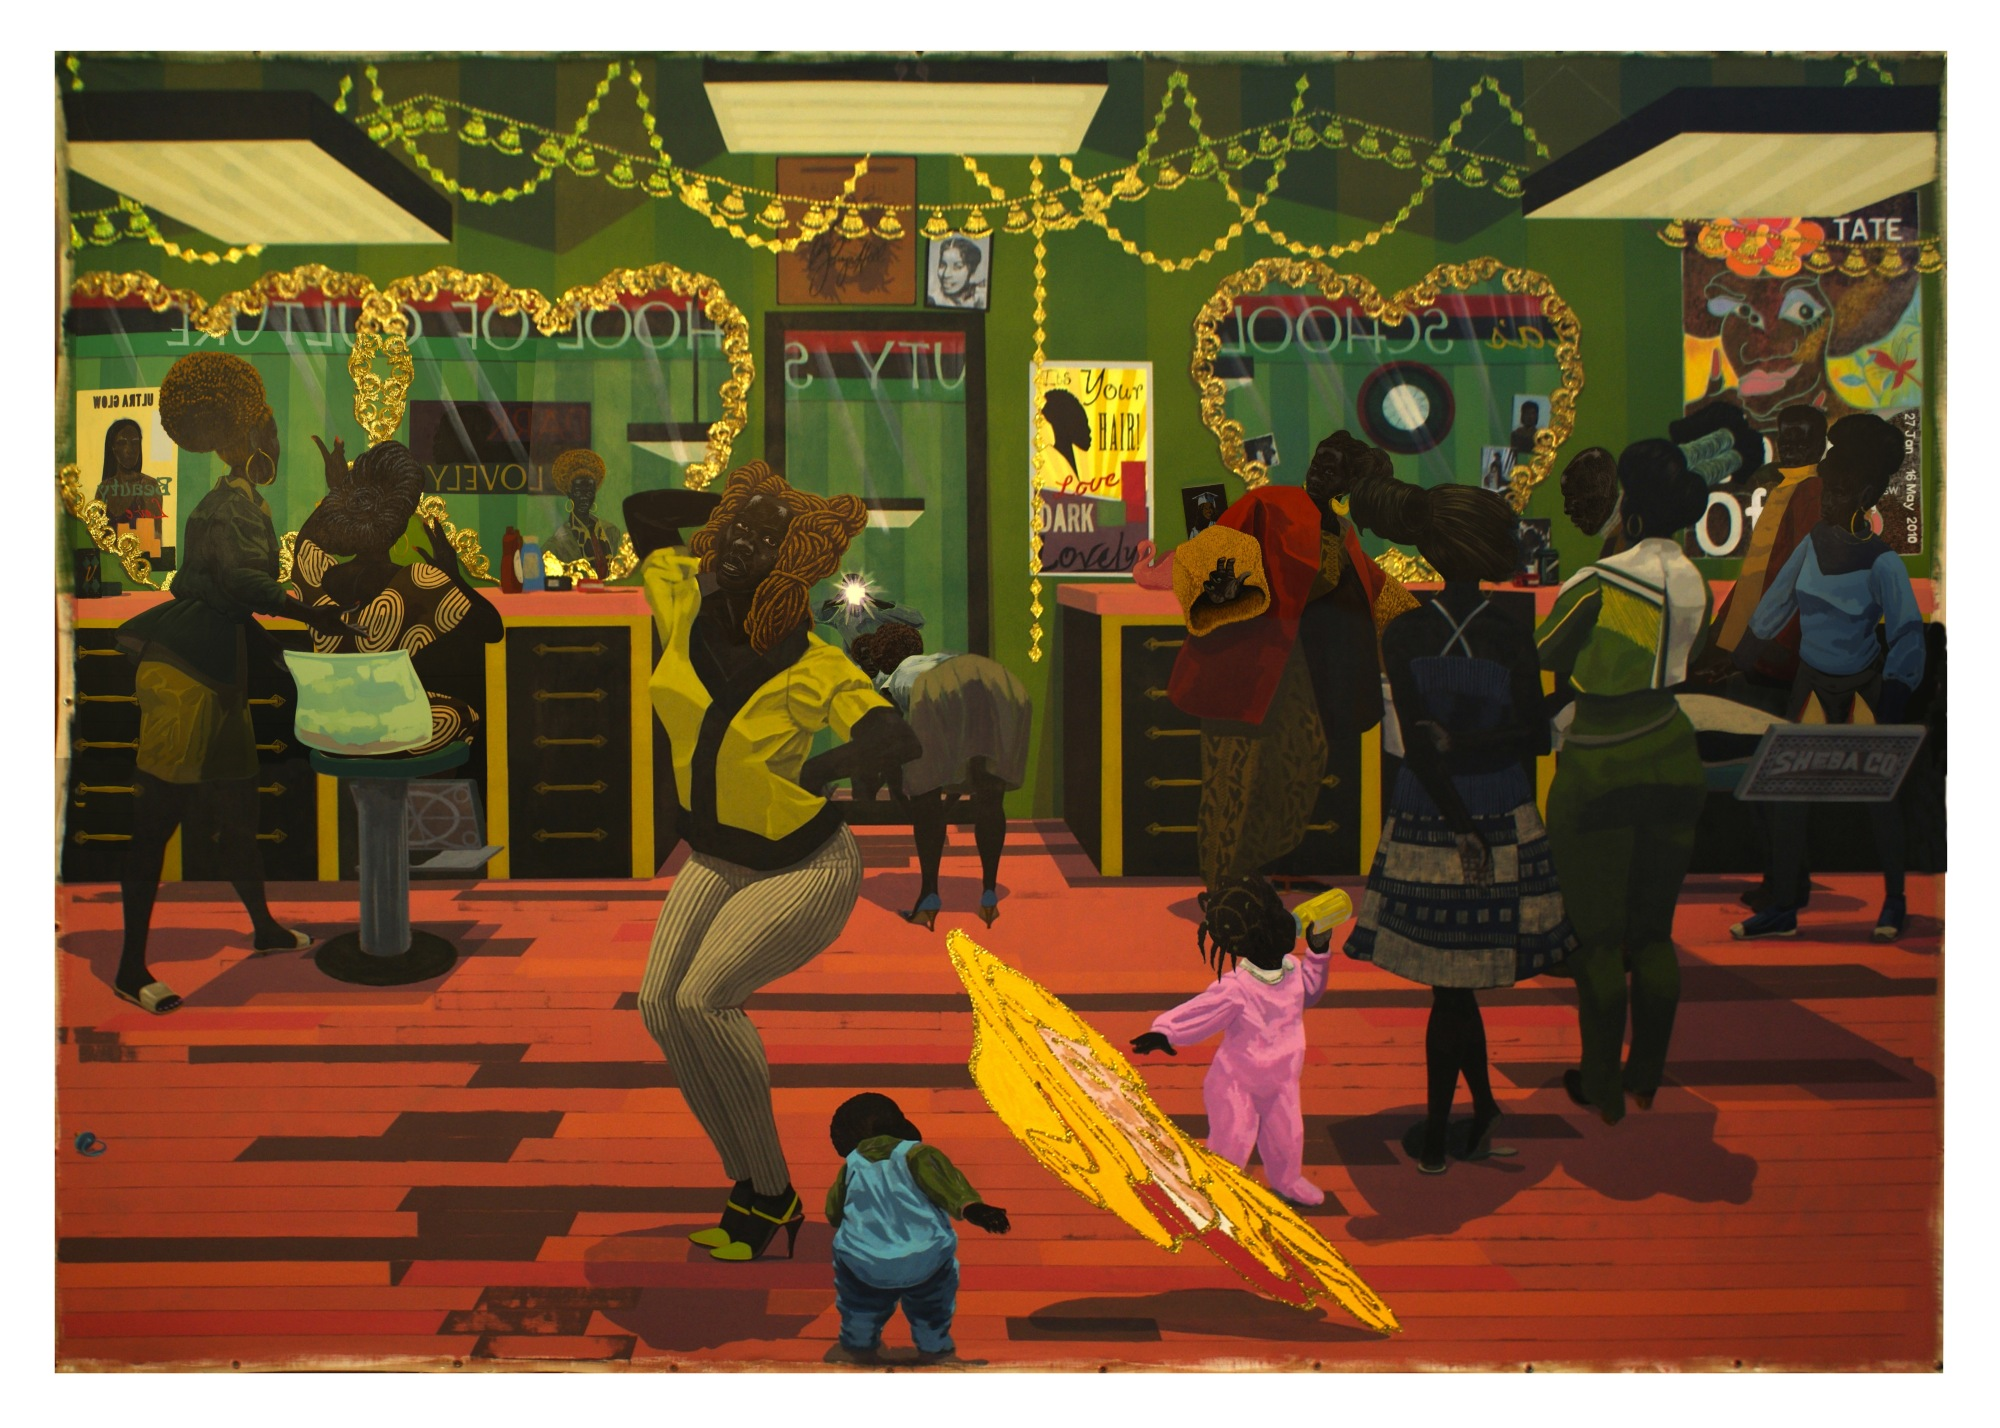 King Of The Black Aesthetic Kerry James Marshall The